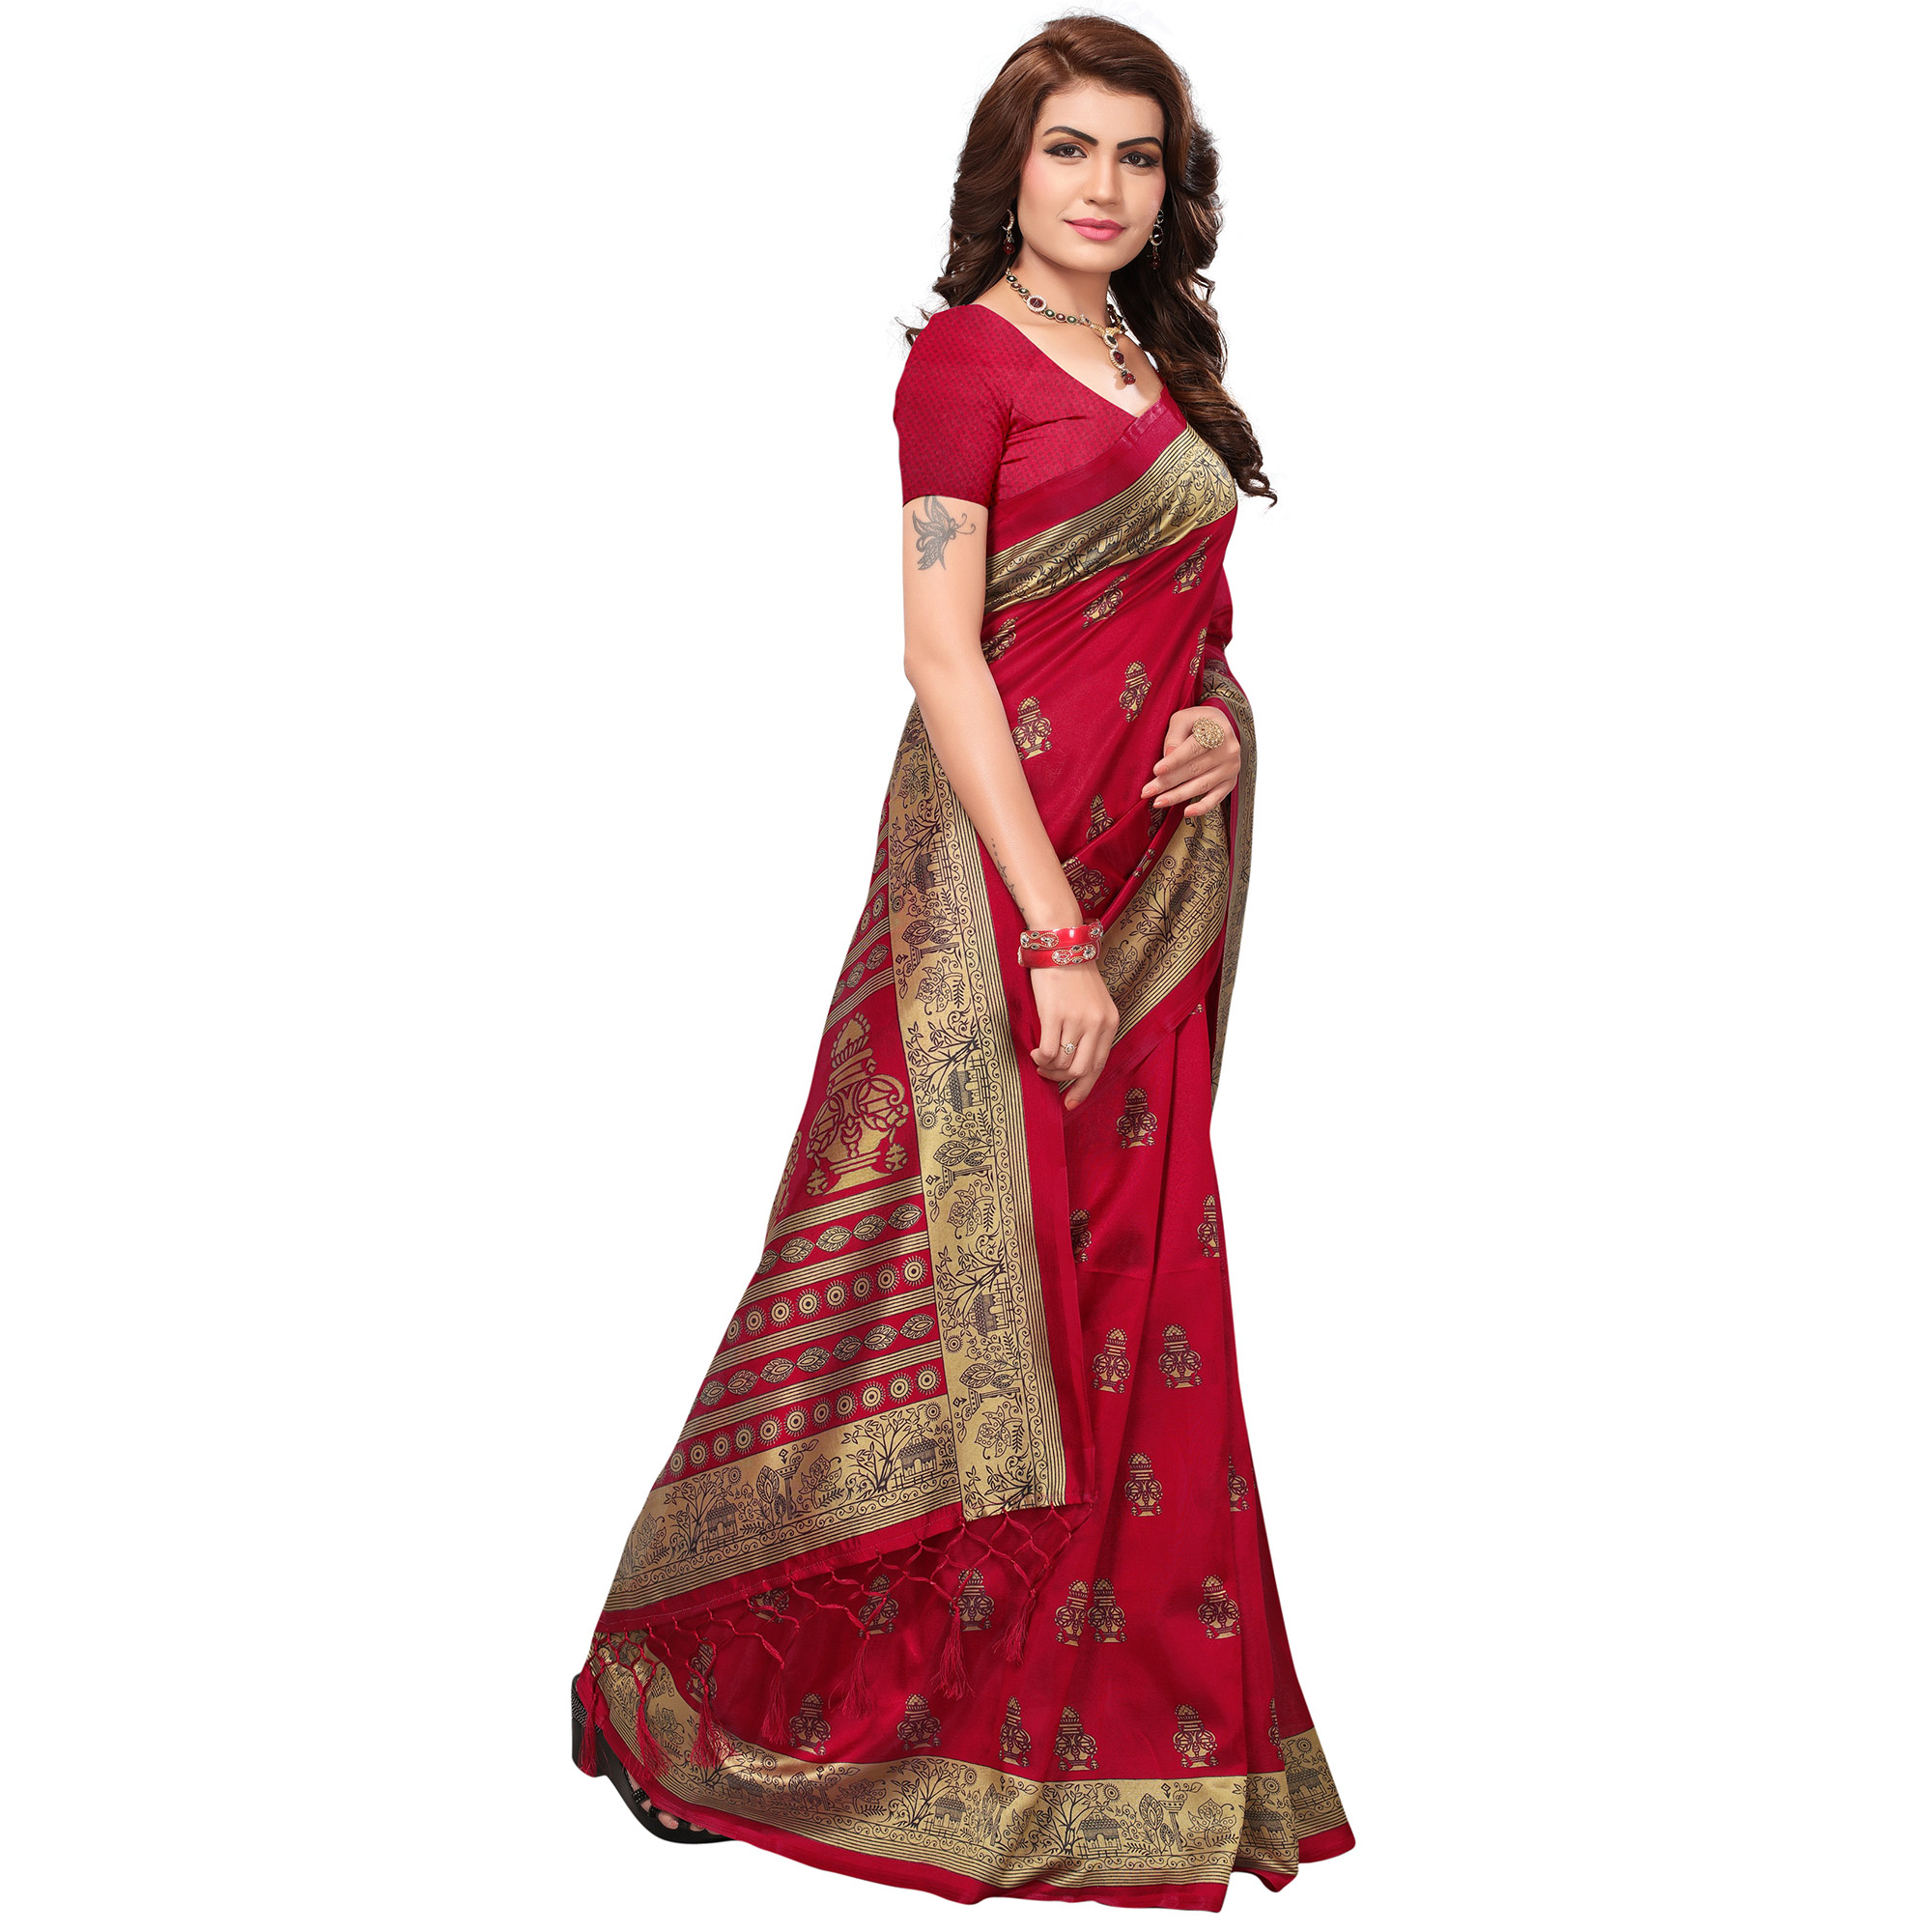 Mesmerising Dark Pink Colored Festive Wear Printed Mysore Art Silk Saree